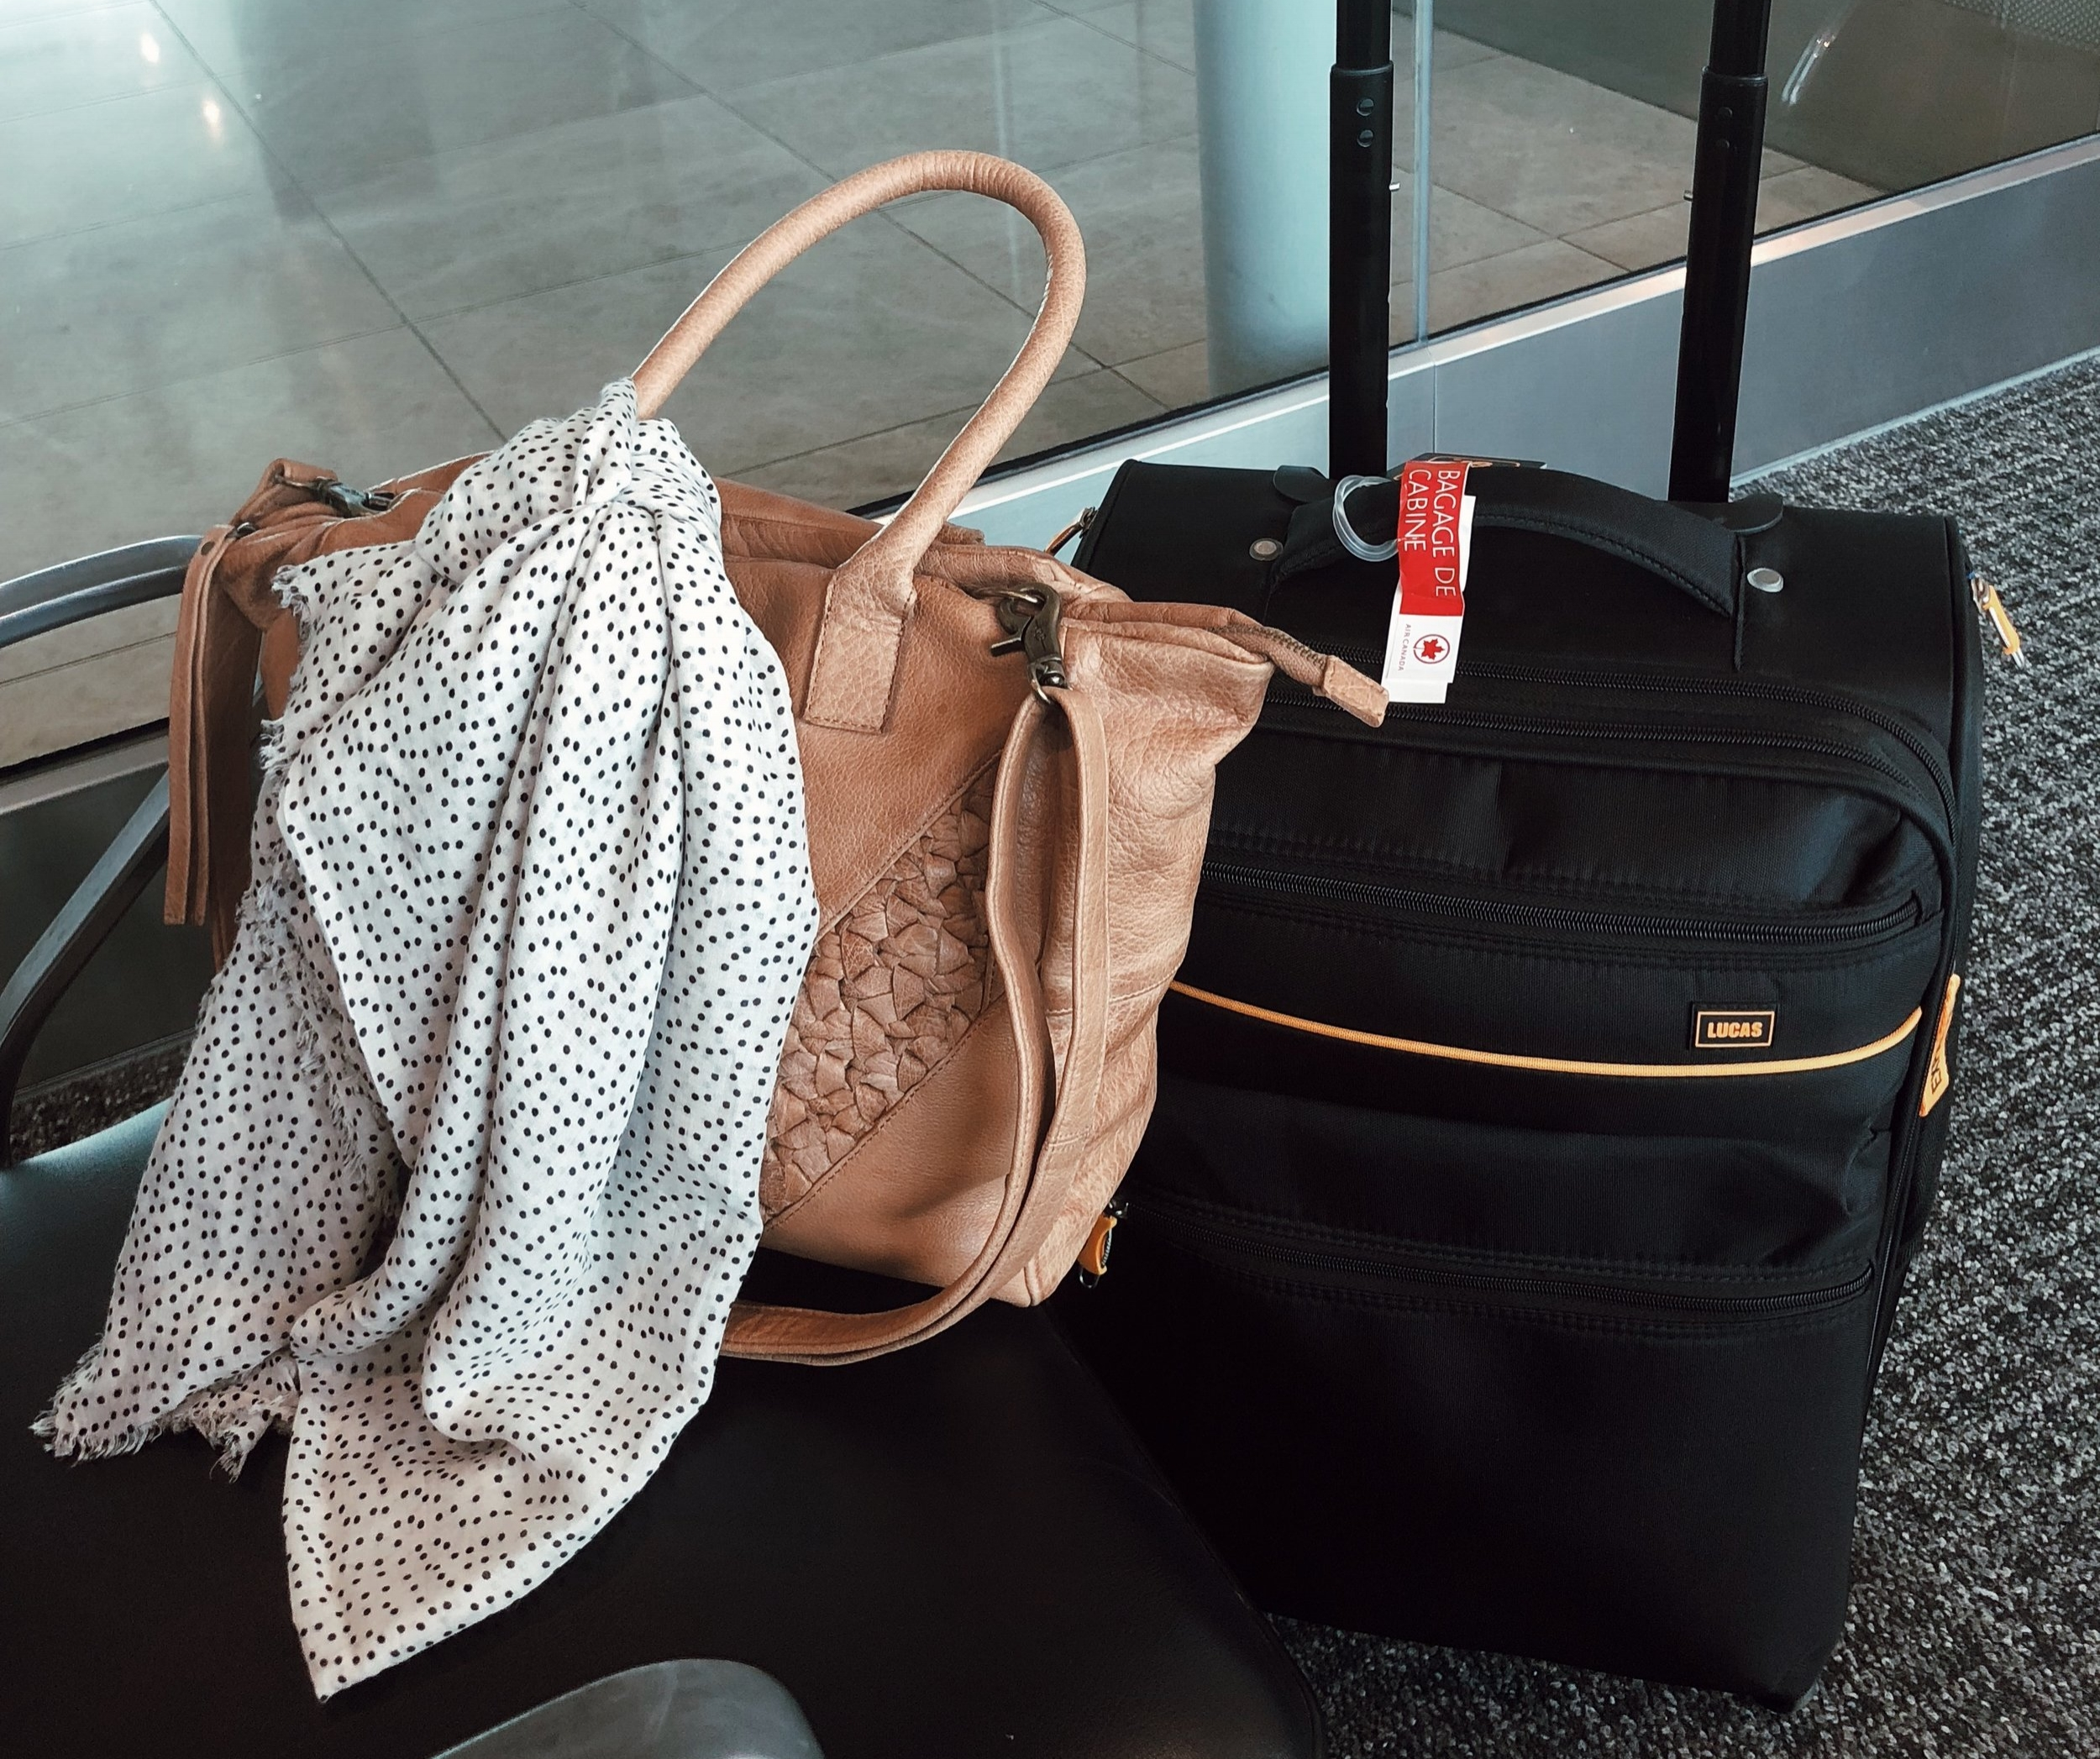 Europe Travel Diary Carry On Packing.jpg